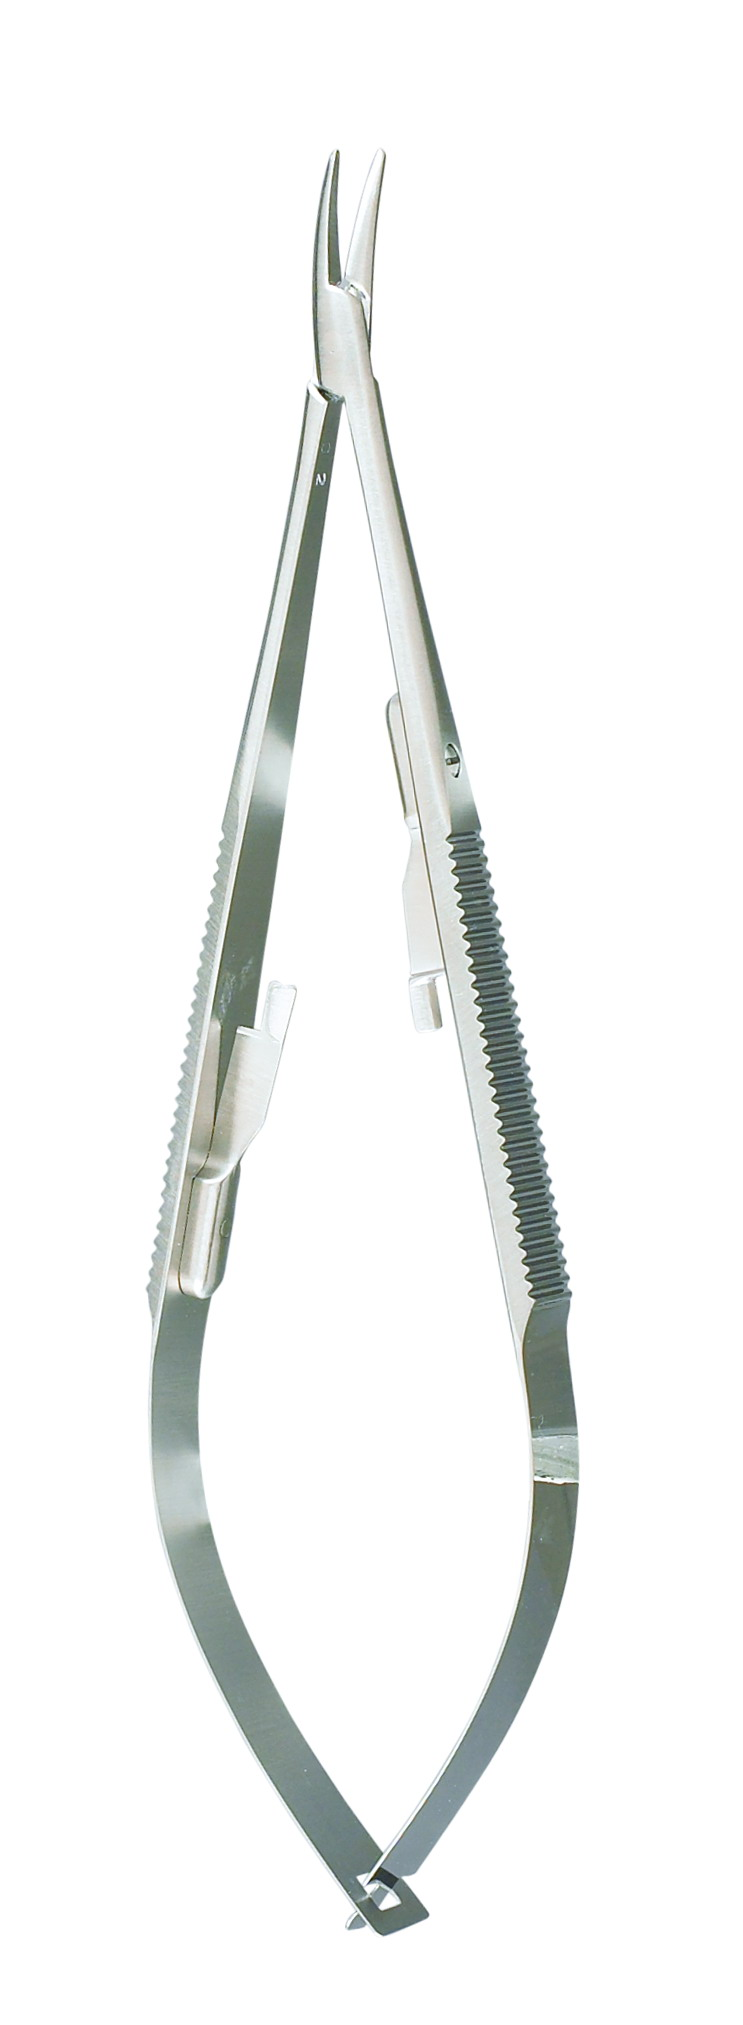 castroviejo-needle-holder-5-1-2-14-cm-curved-with-lock-18-1832-miltex.jpg